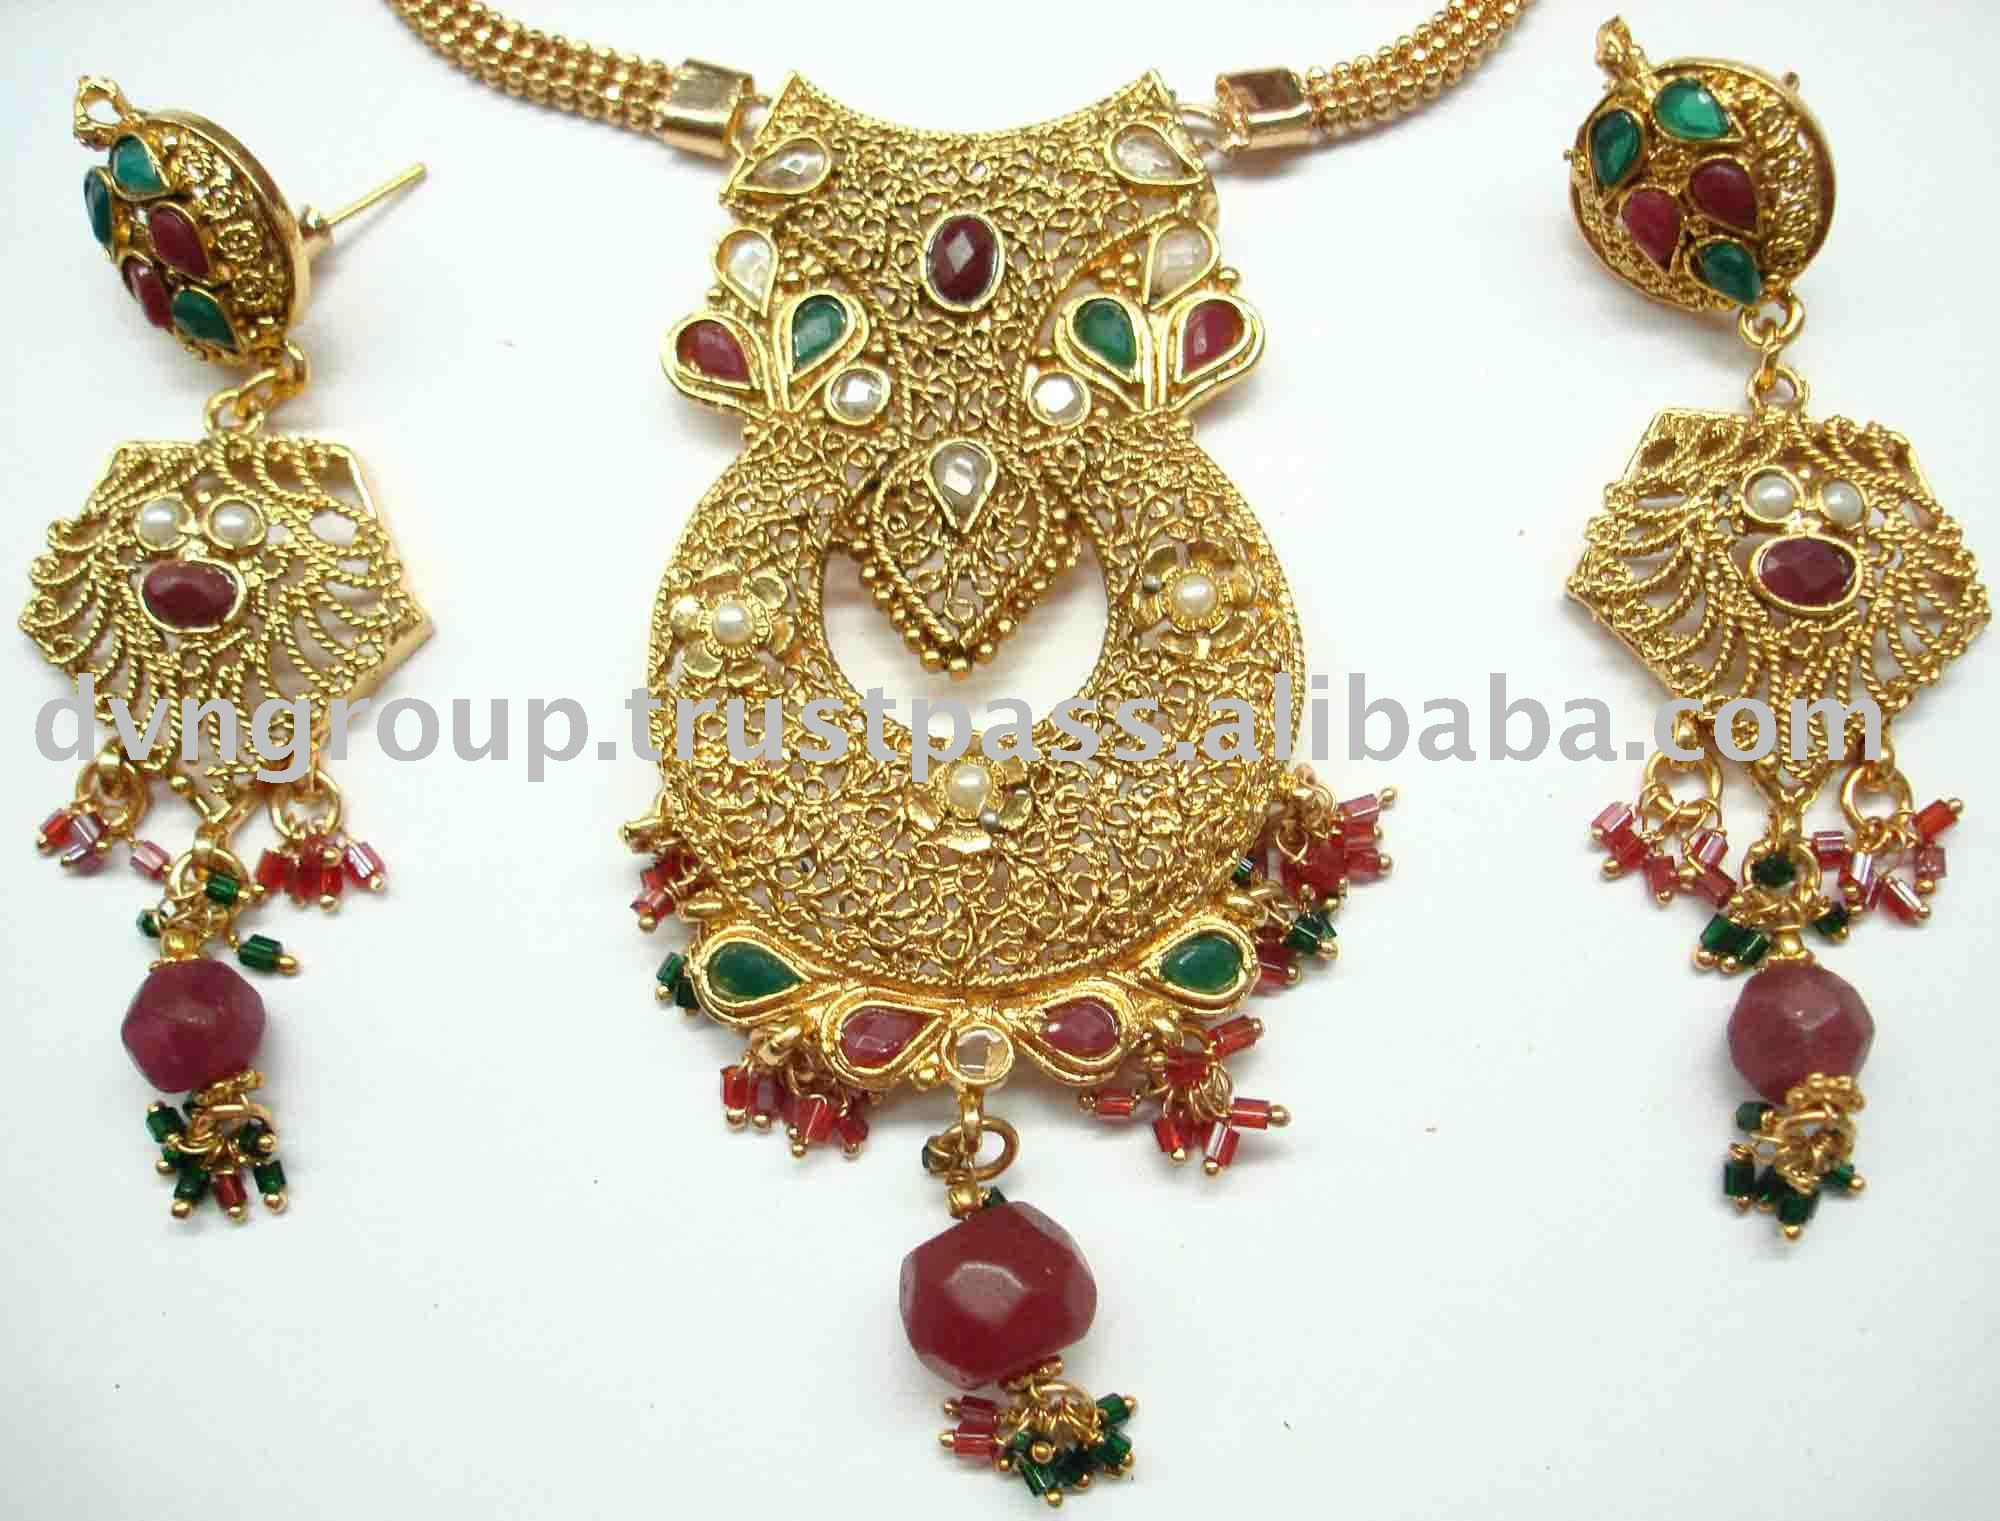 choker pendant set zoom advertisements indian solitaire jewelery sauvarna diamond